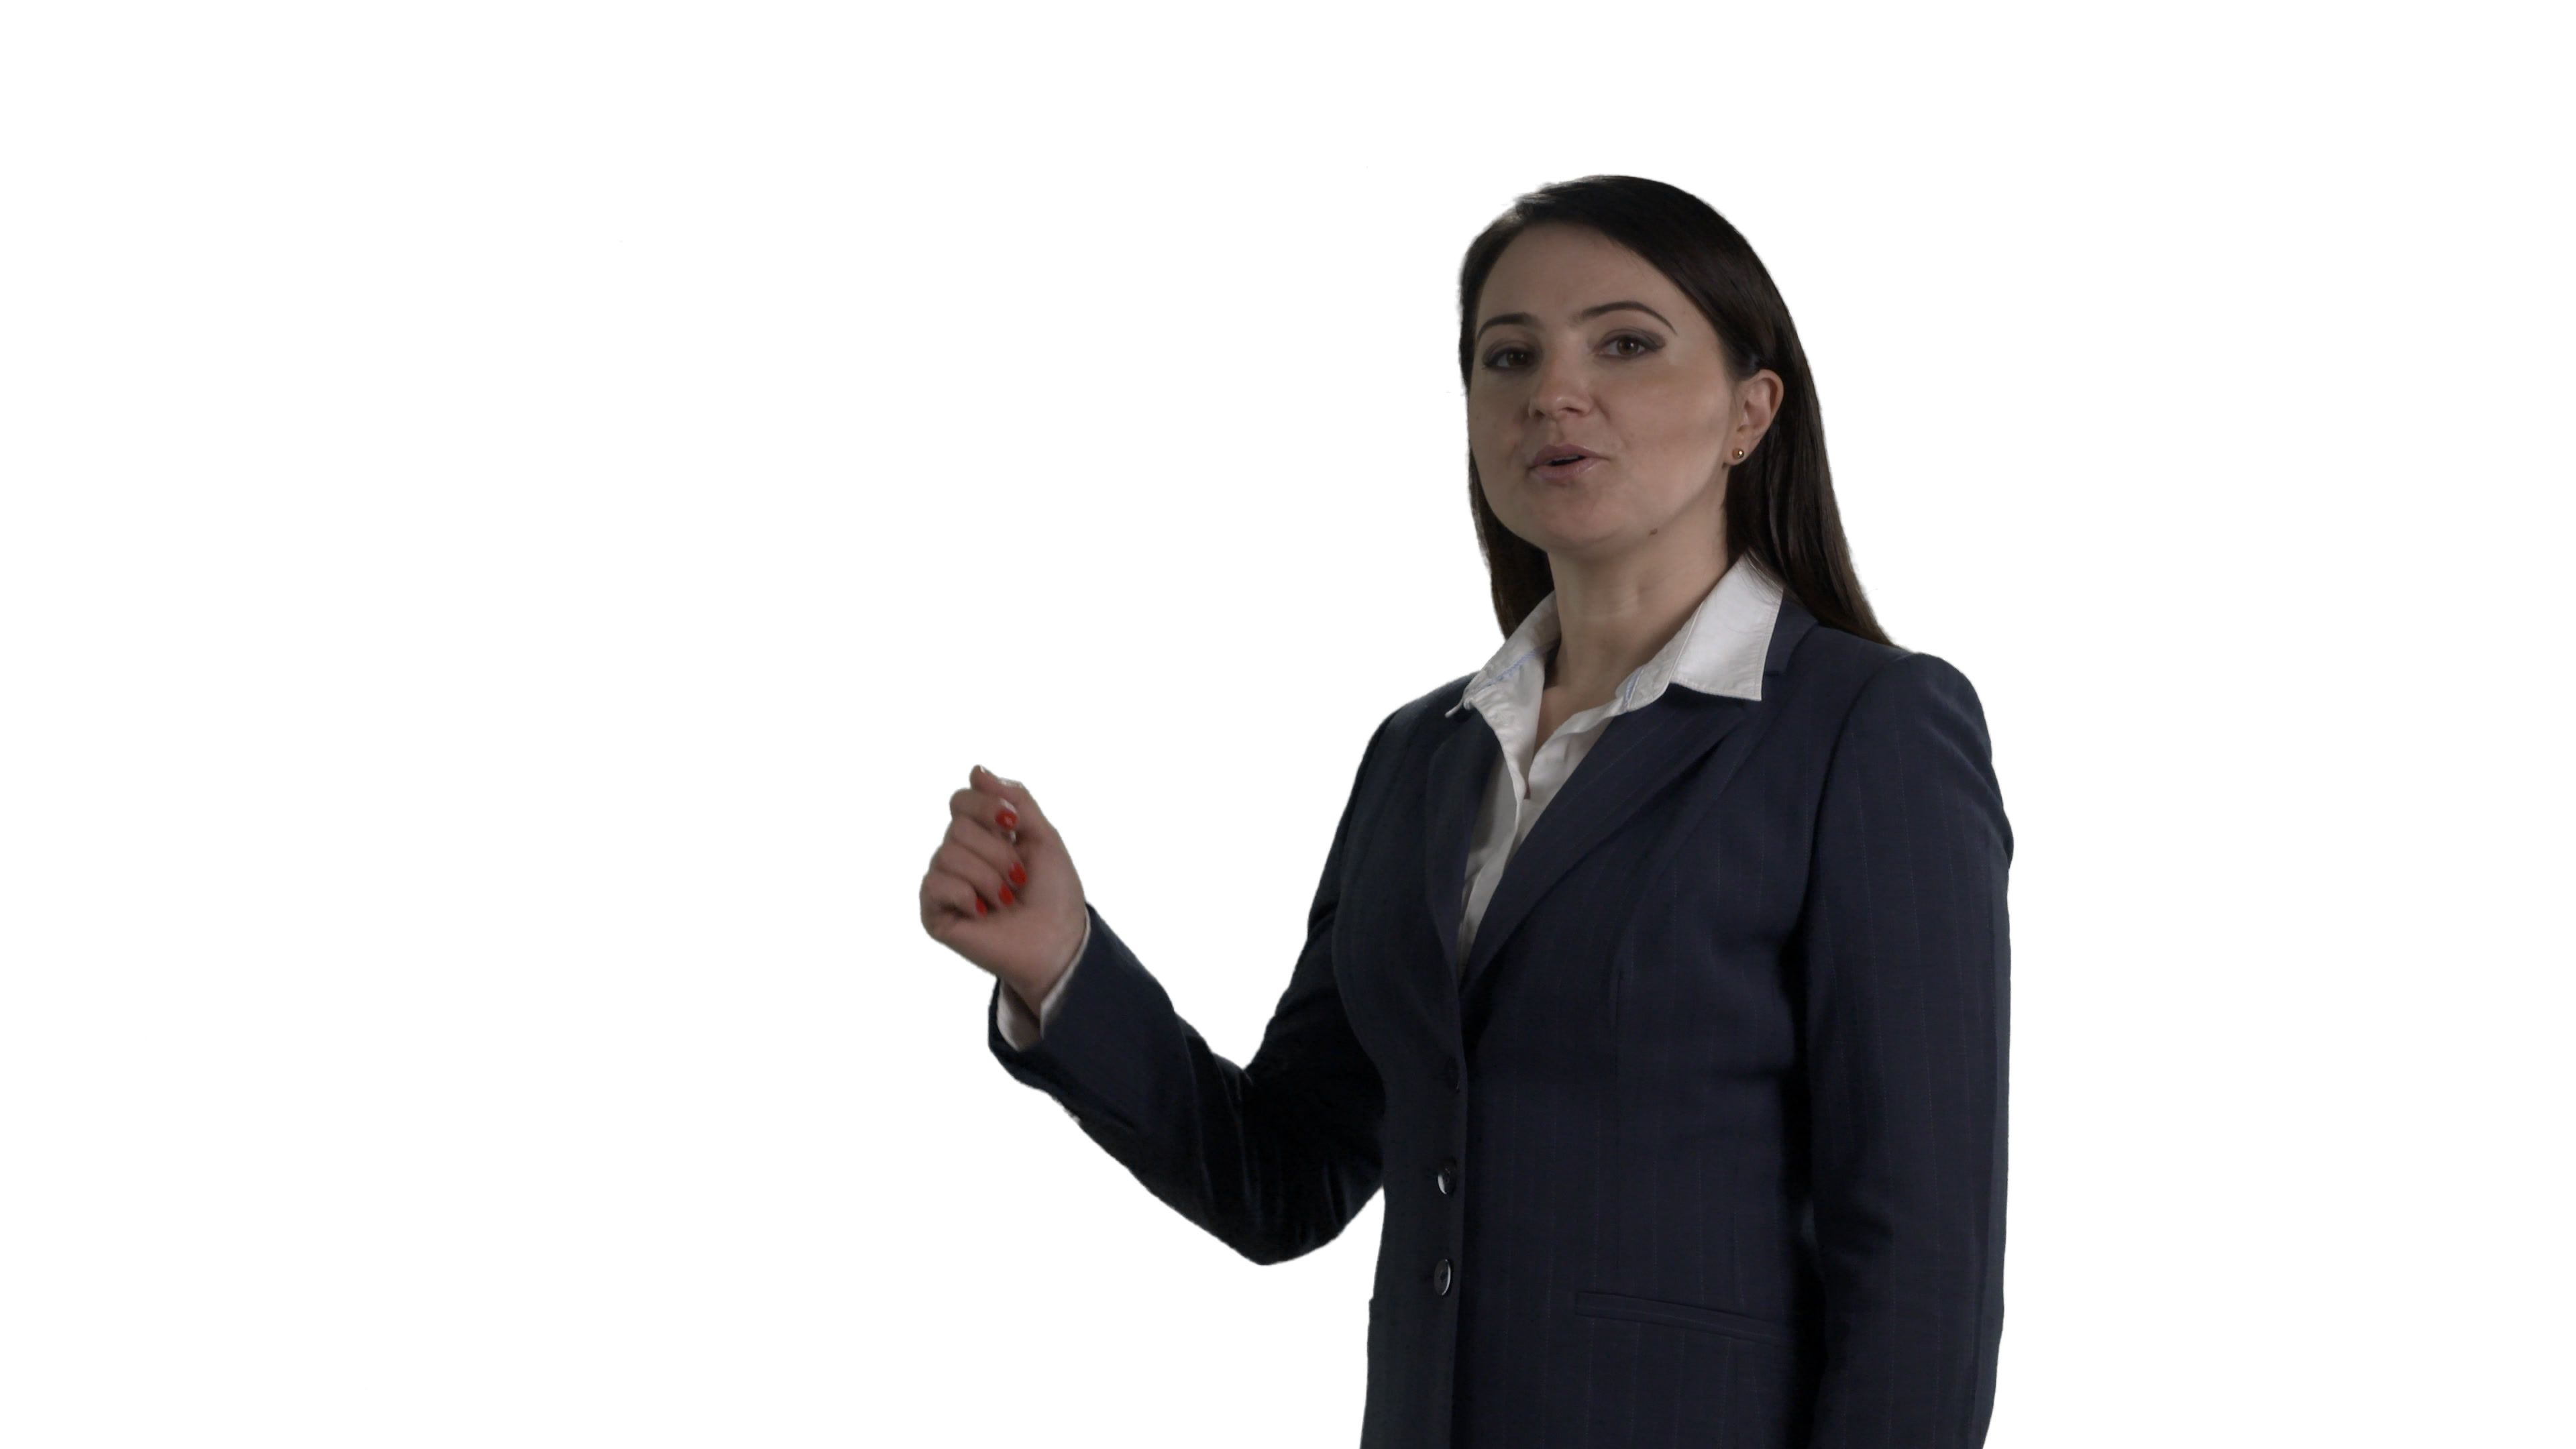 Business Woman During Presentation On White Background Alpha Channel Stock Footage Presentation White Business Woman Business Women Women White Background